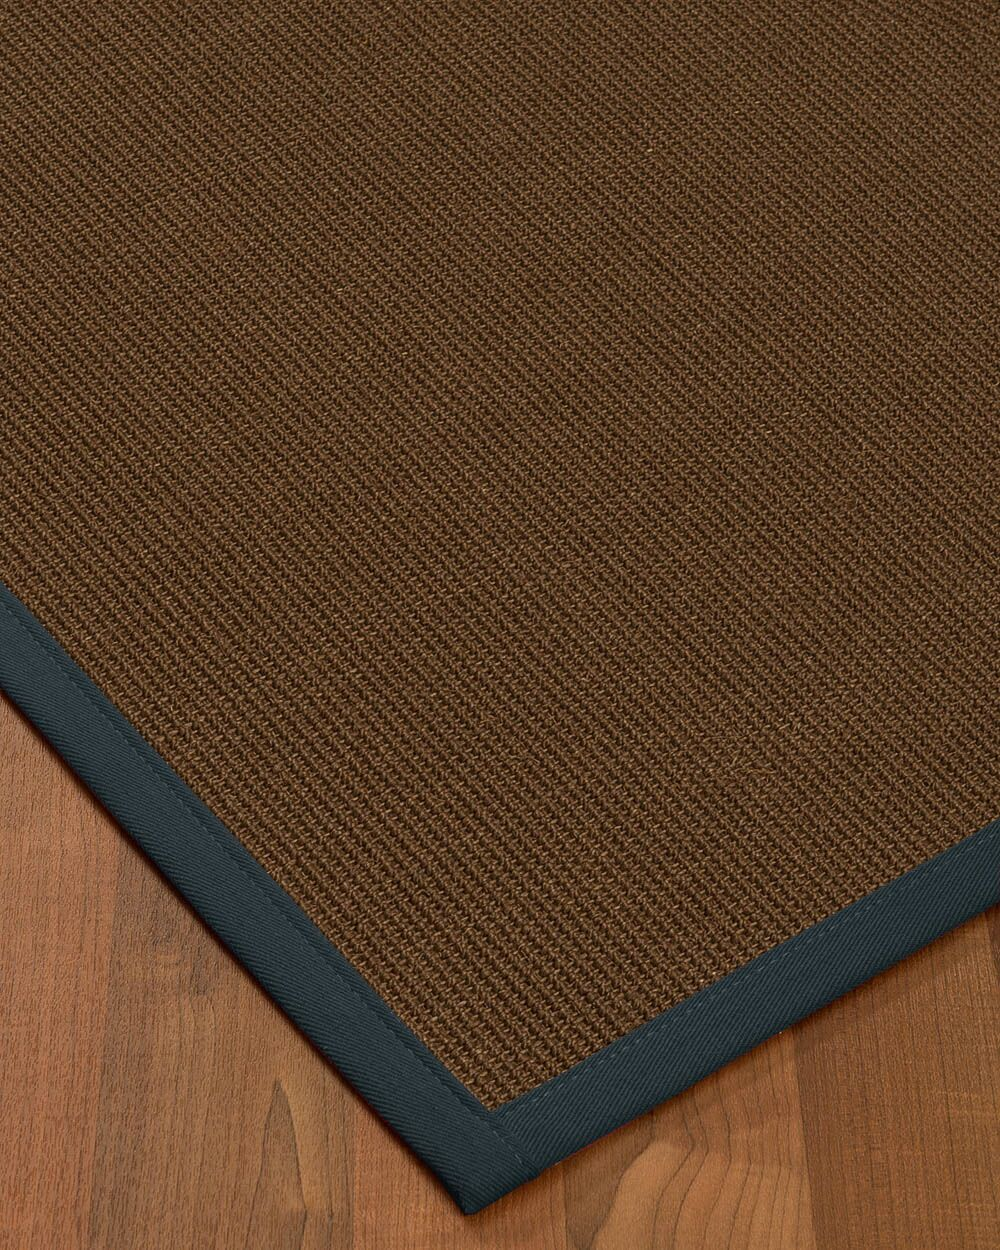 Heider Border Hand-Woven Brown/Marine Area Rug Rug Pad Included: No, Rug Size: Rectangle 3' x 5'